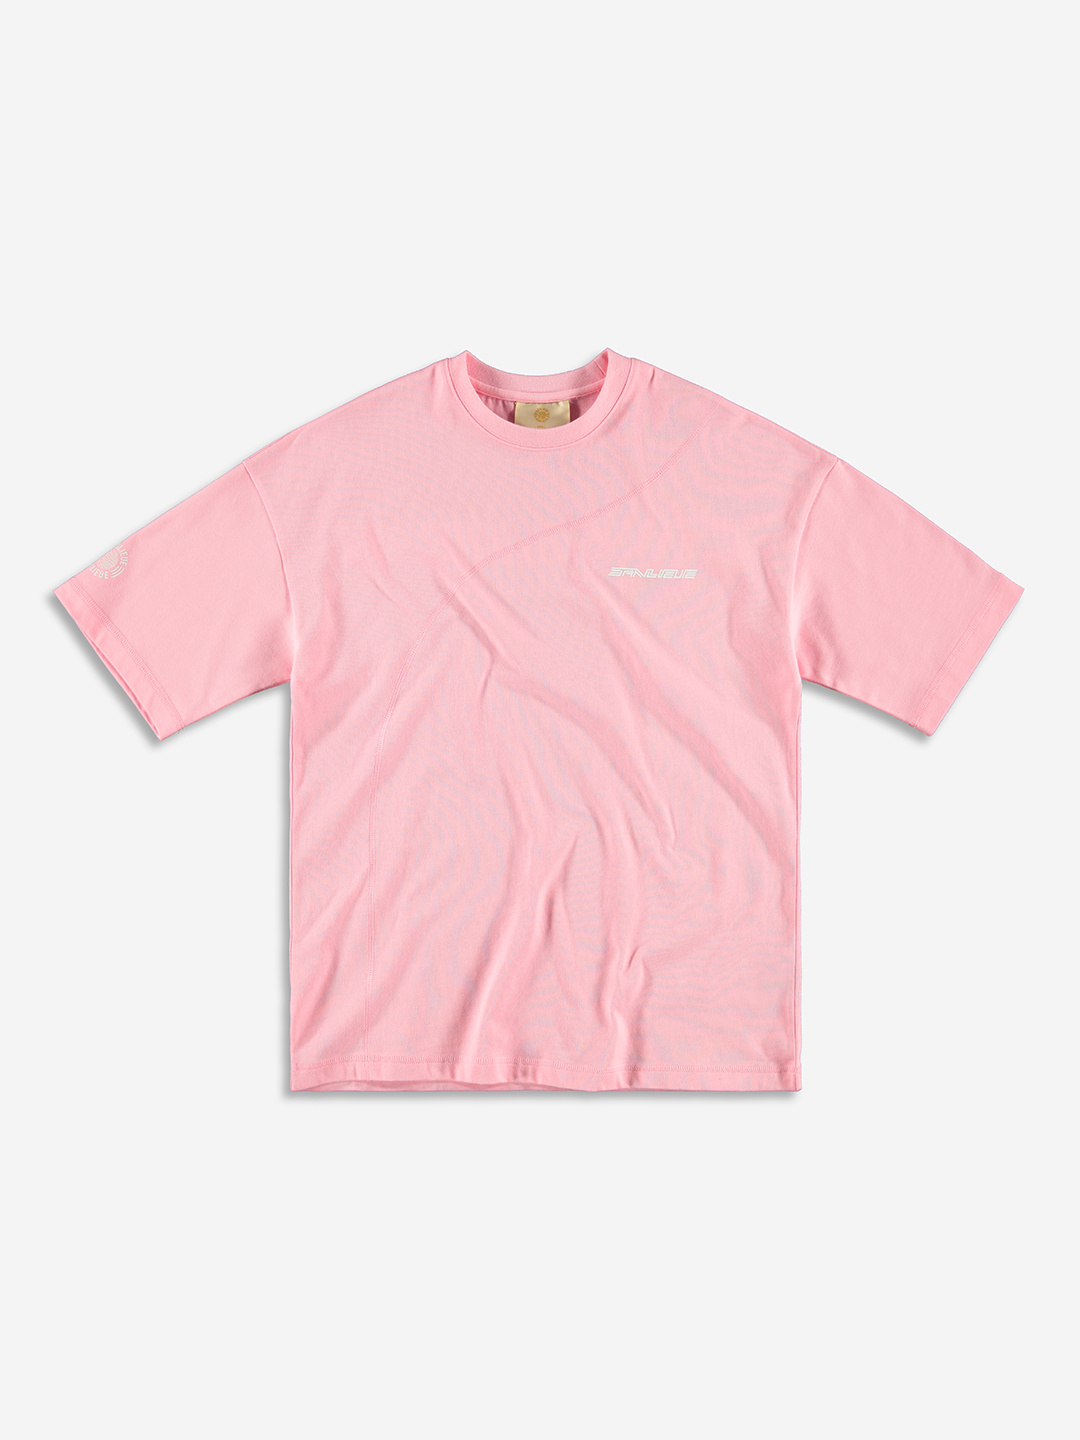 DIAGONAL STITCH OVERSIZED T-SHIRT BABY PINK